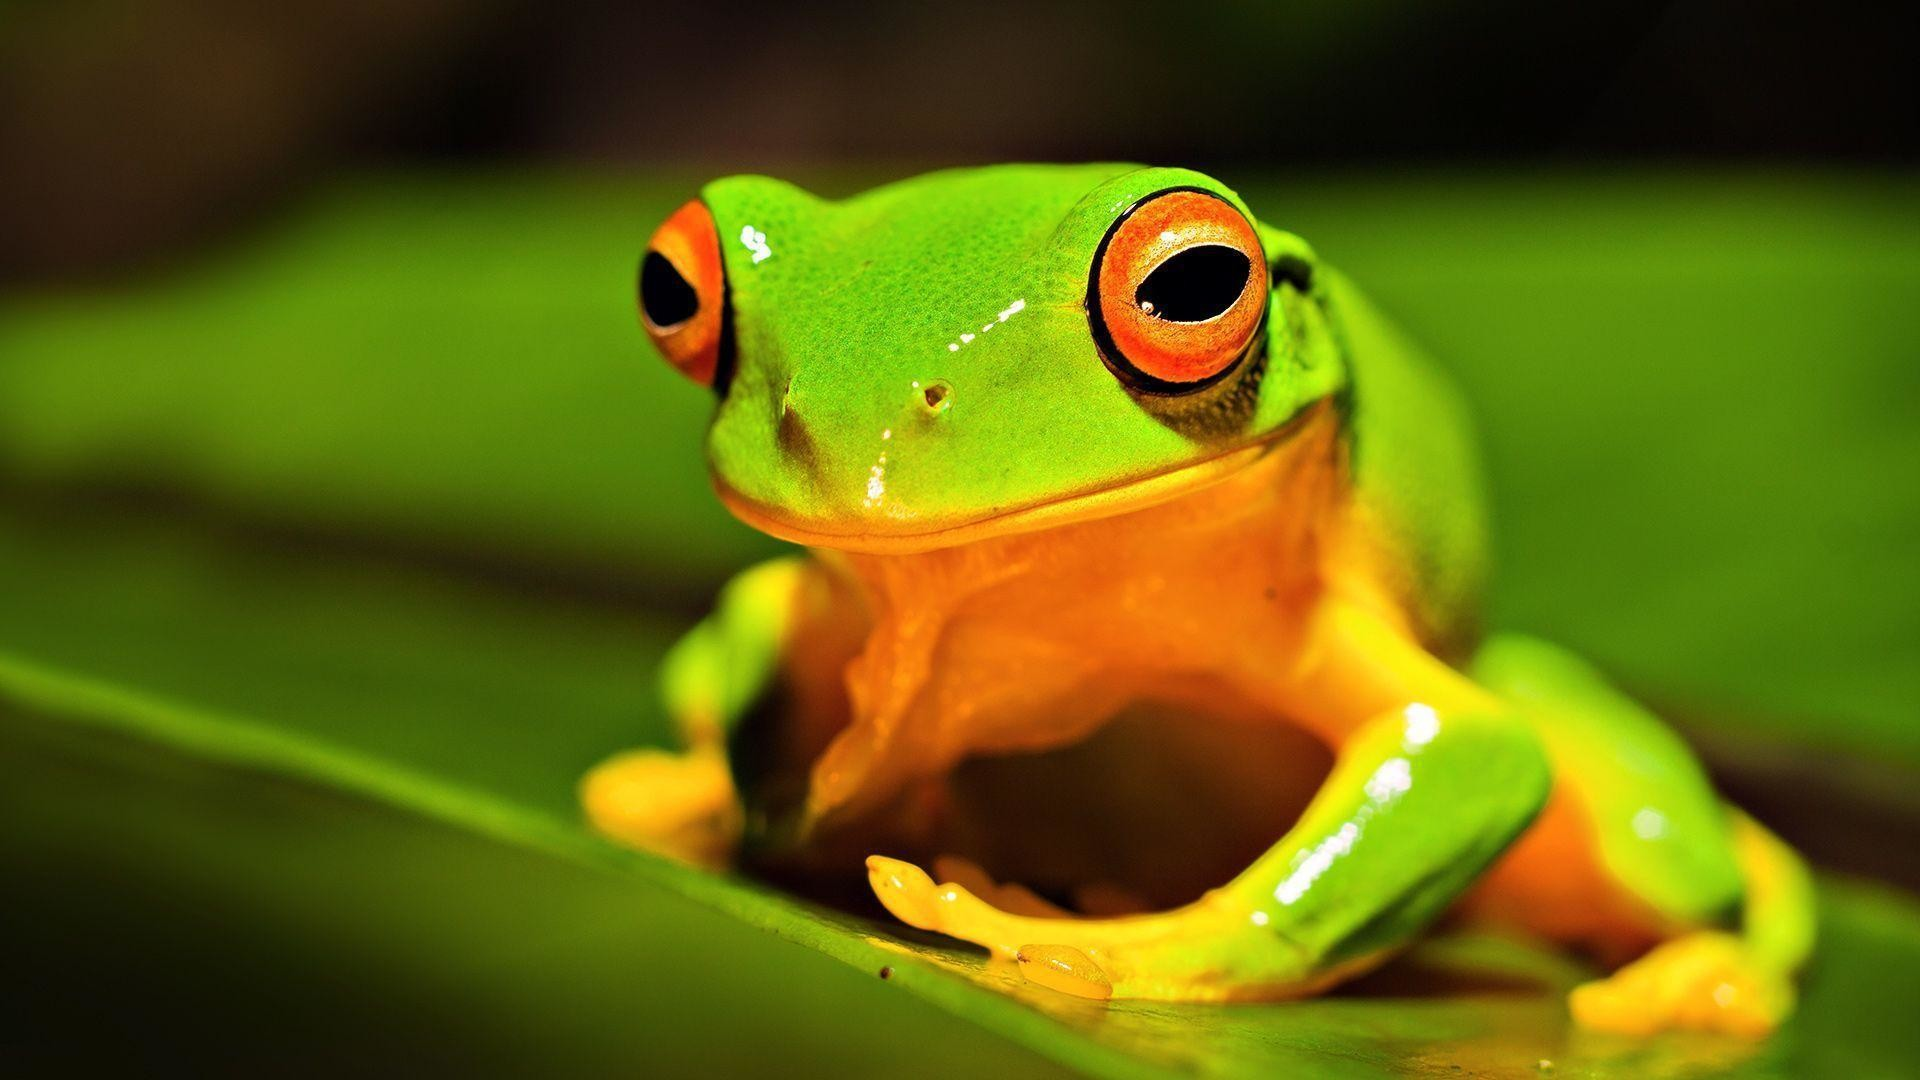 Res: 1920x1080, orange thighed tree frog Wallpaper | HD Wallpapers